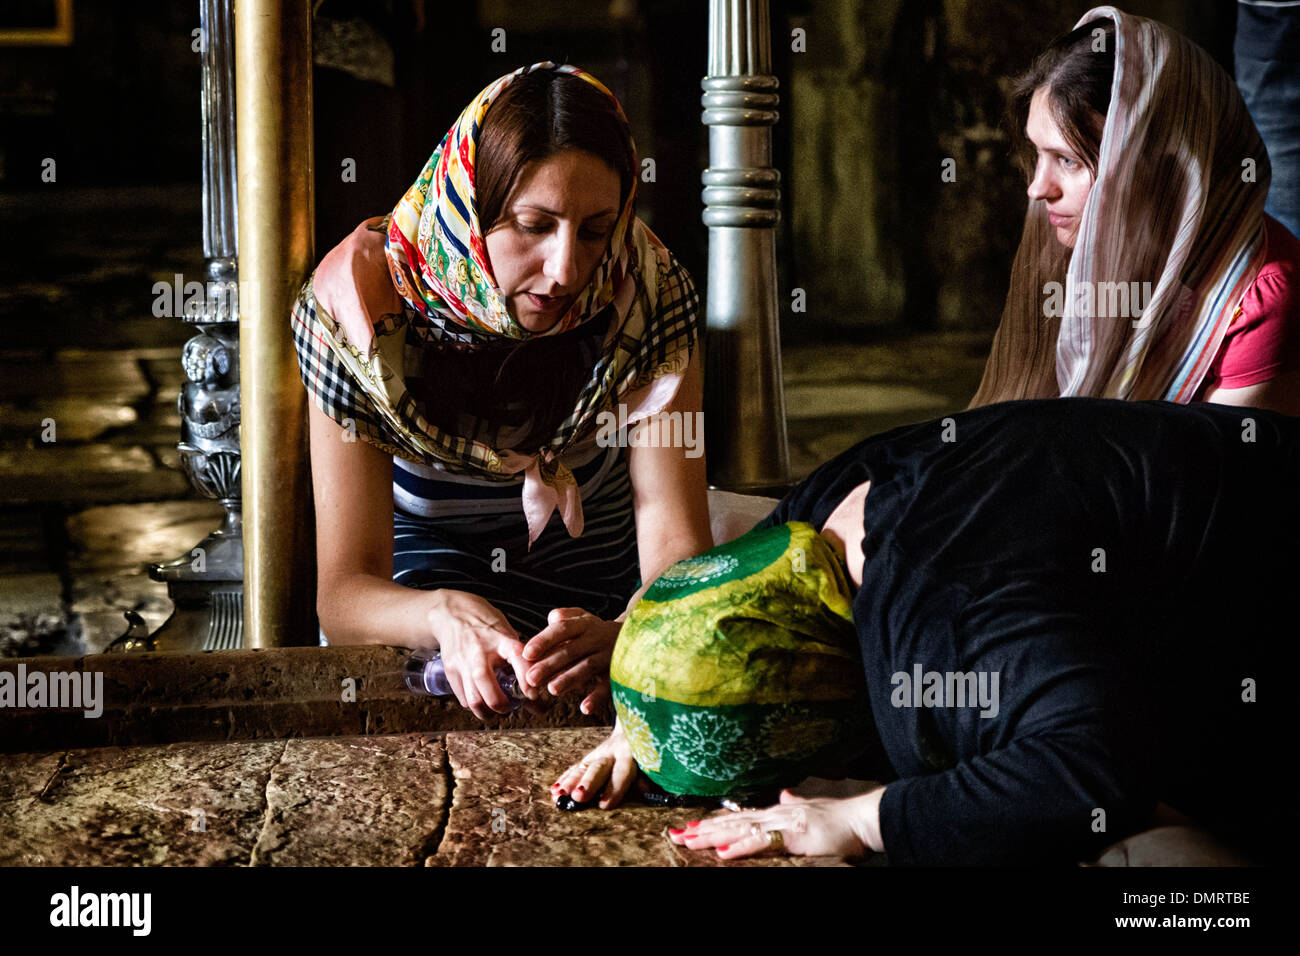 The Stone of Anointing, also known as The Stone of Unction inside the Church of the Holy Sepulchre. Stock Photo